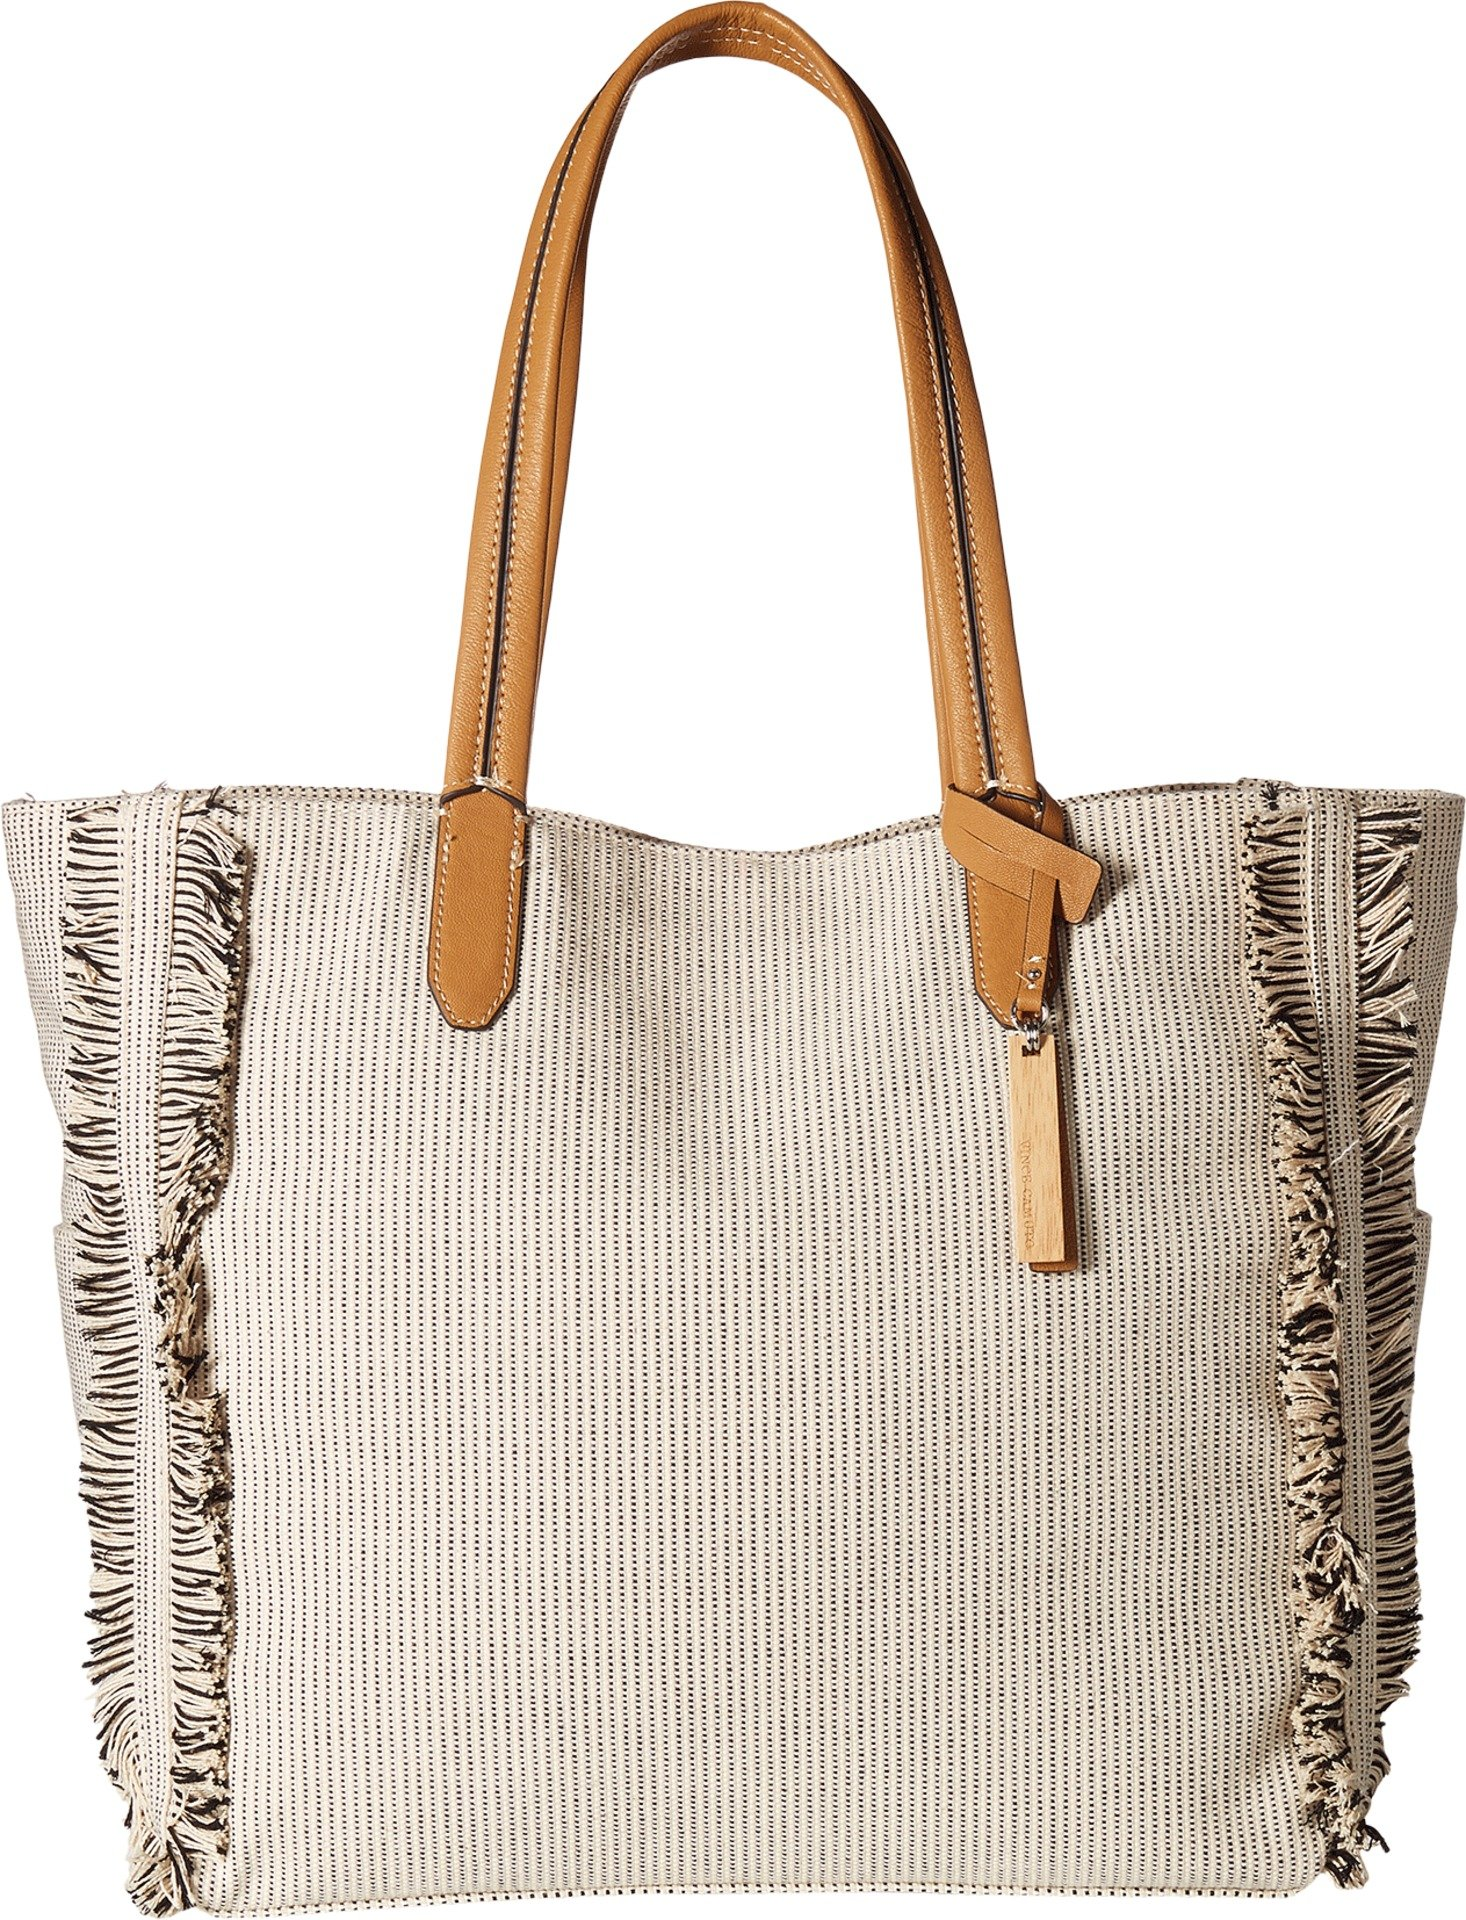 Vince Camuto Women's Iona Tote Beige/White One Size